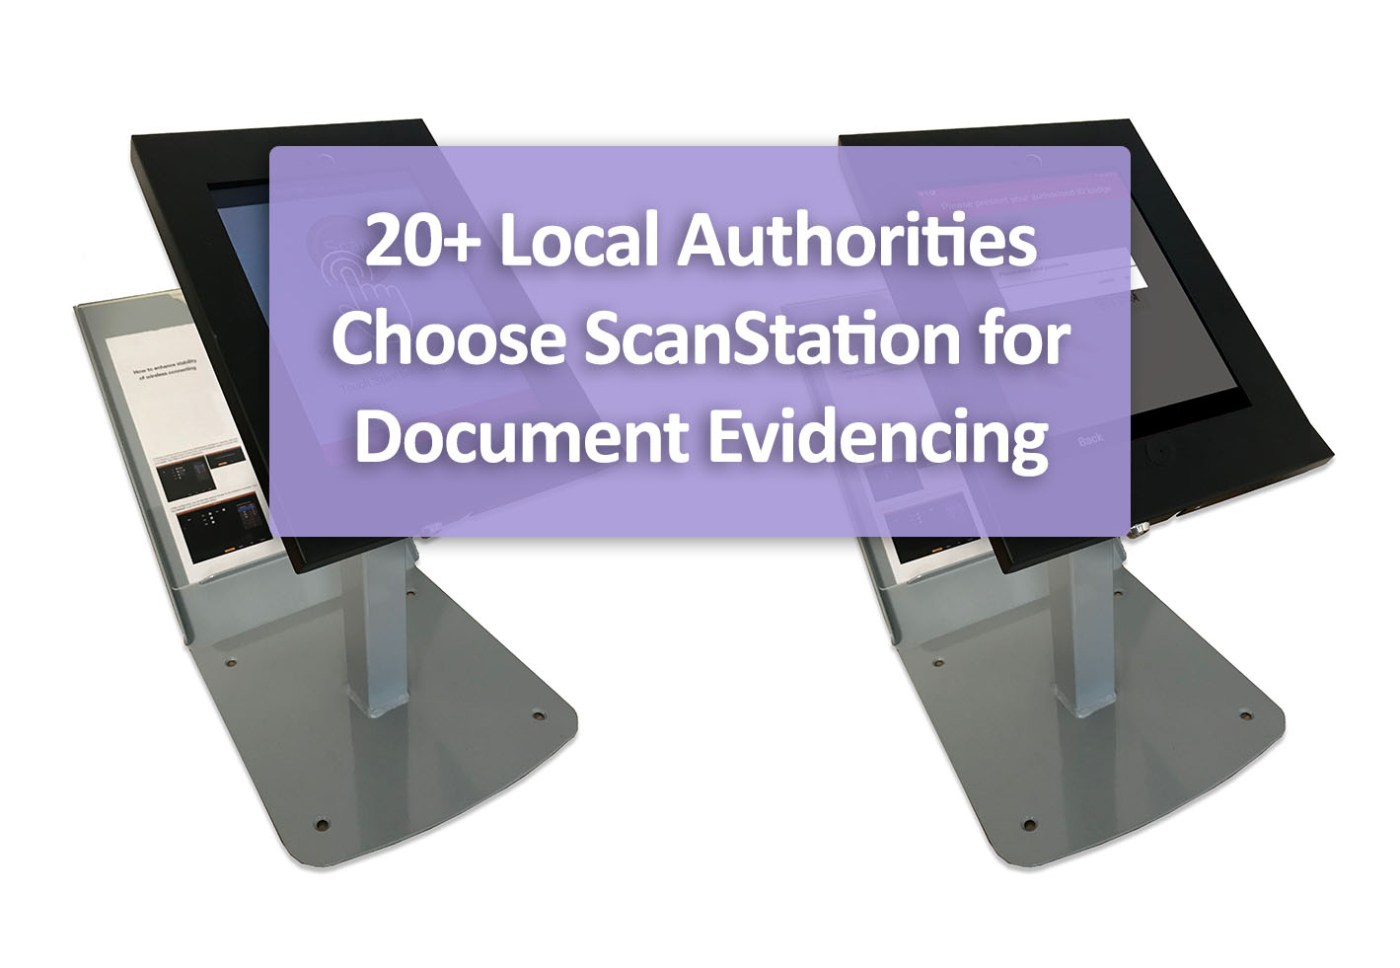 20+ Local Authorities Choose ScanStation for Document Evidencing